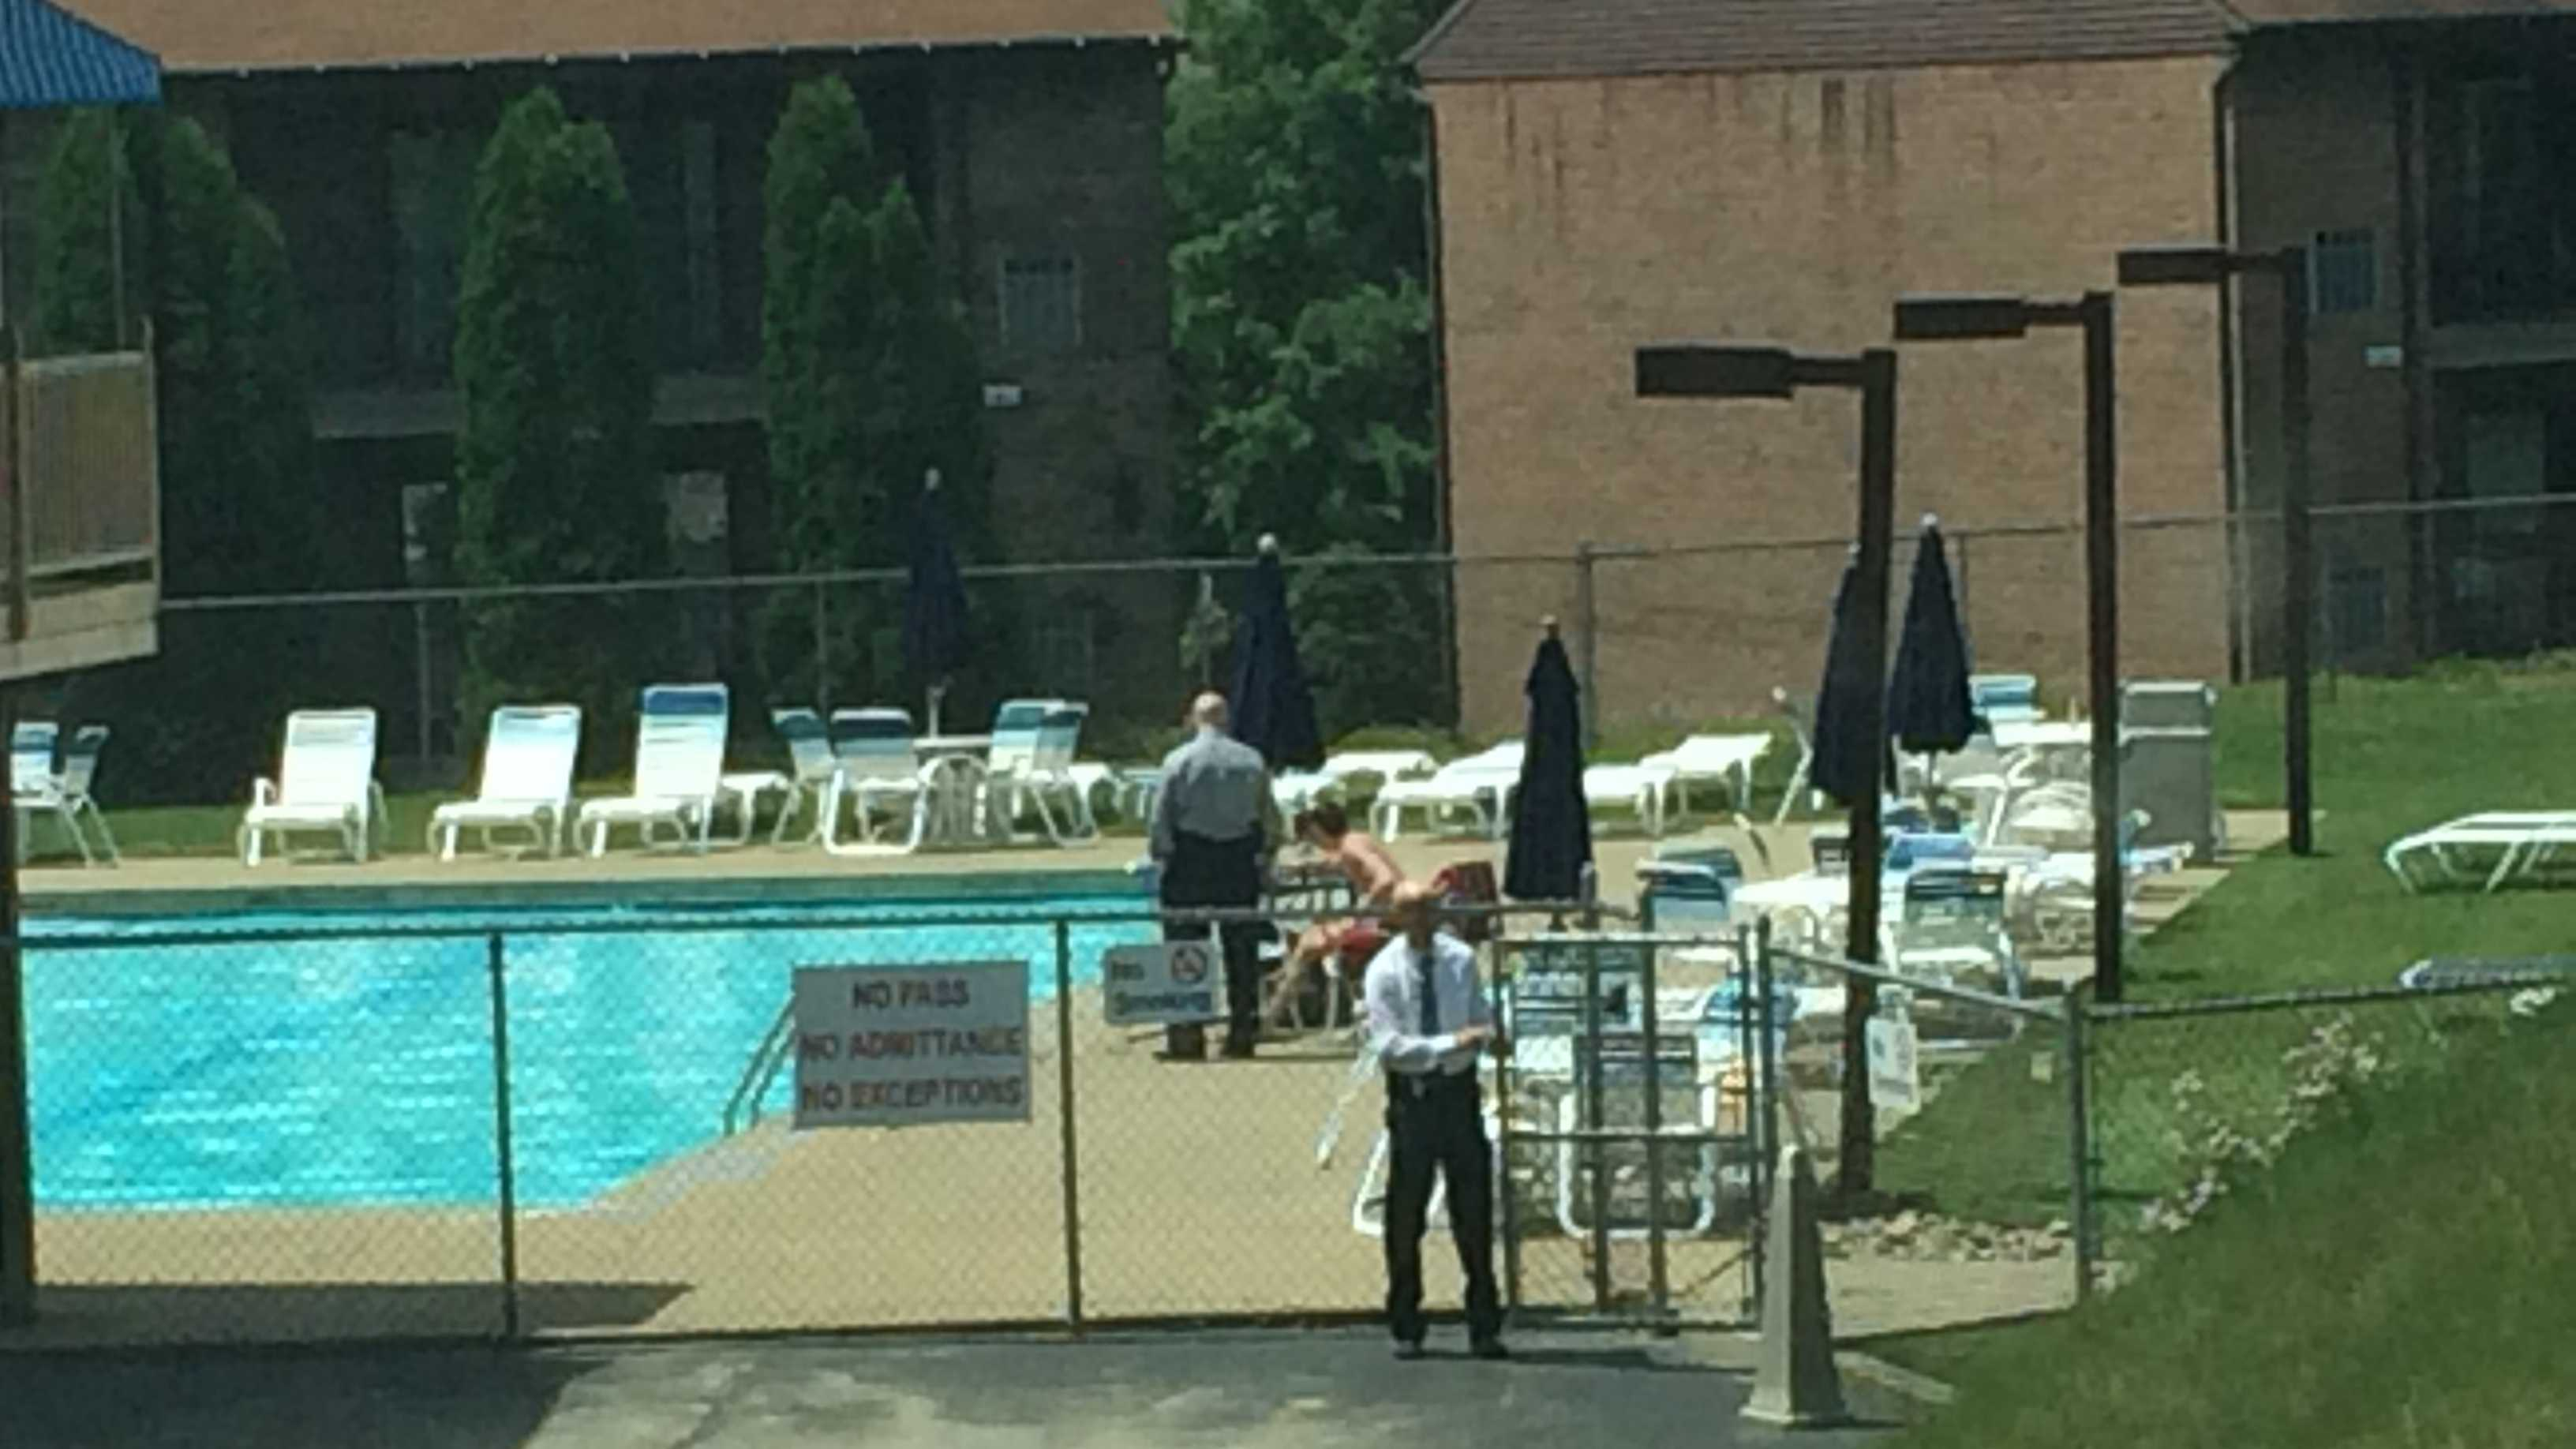 police at pool